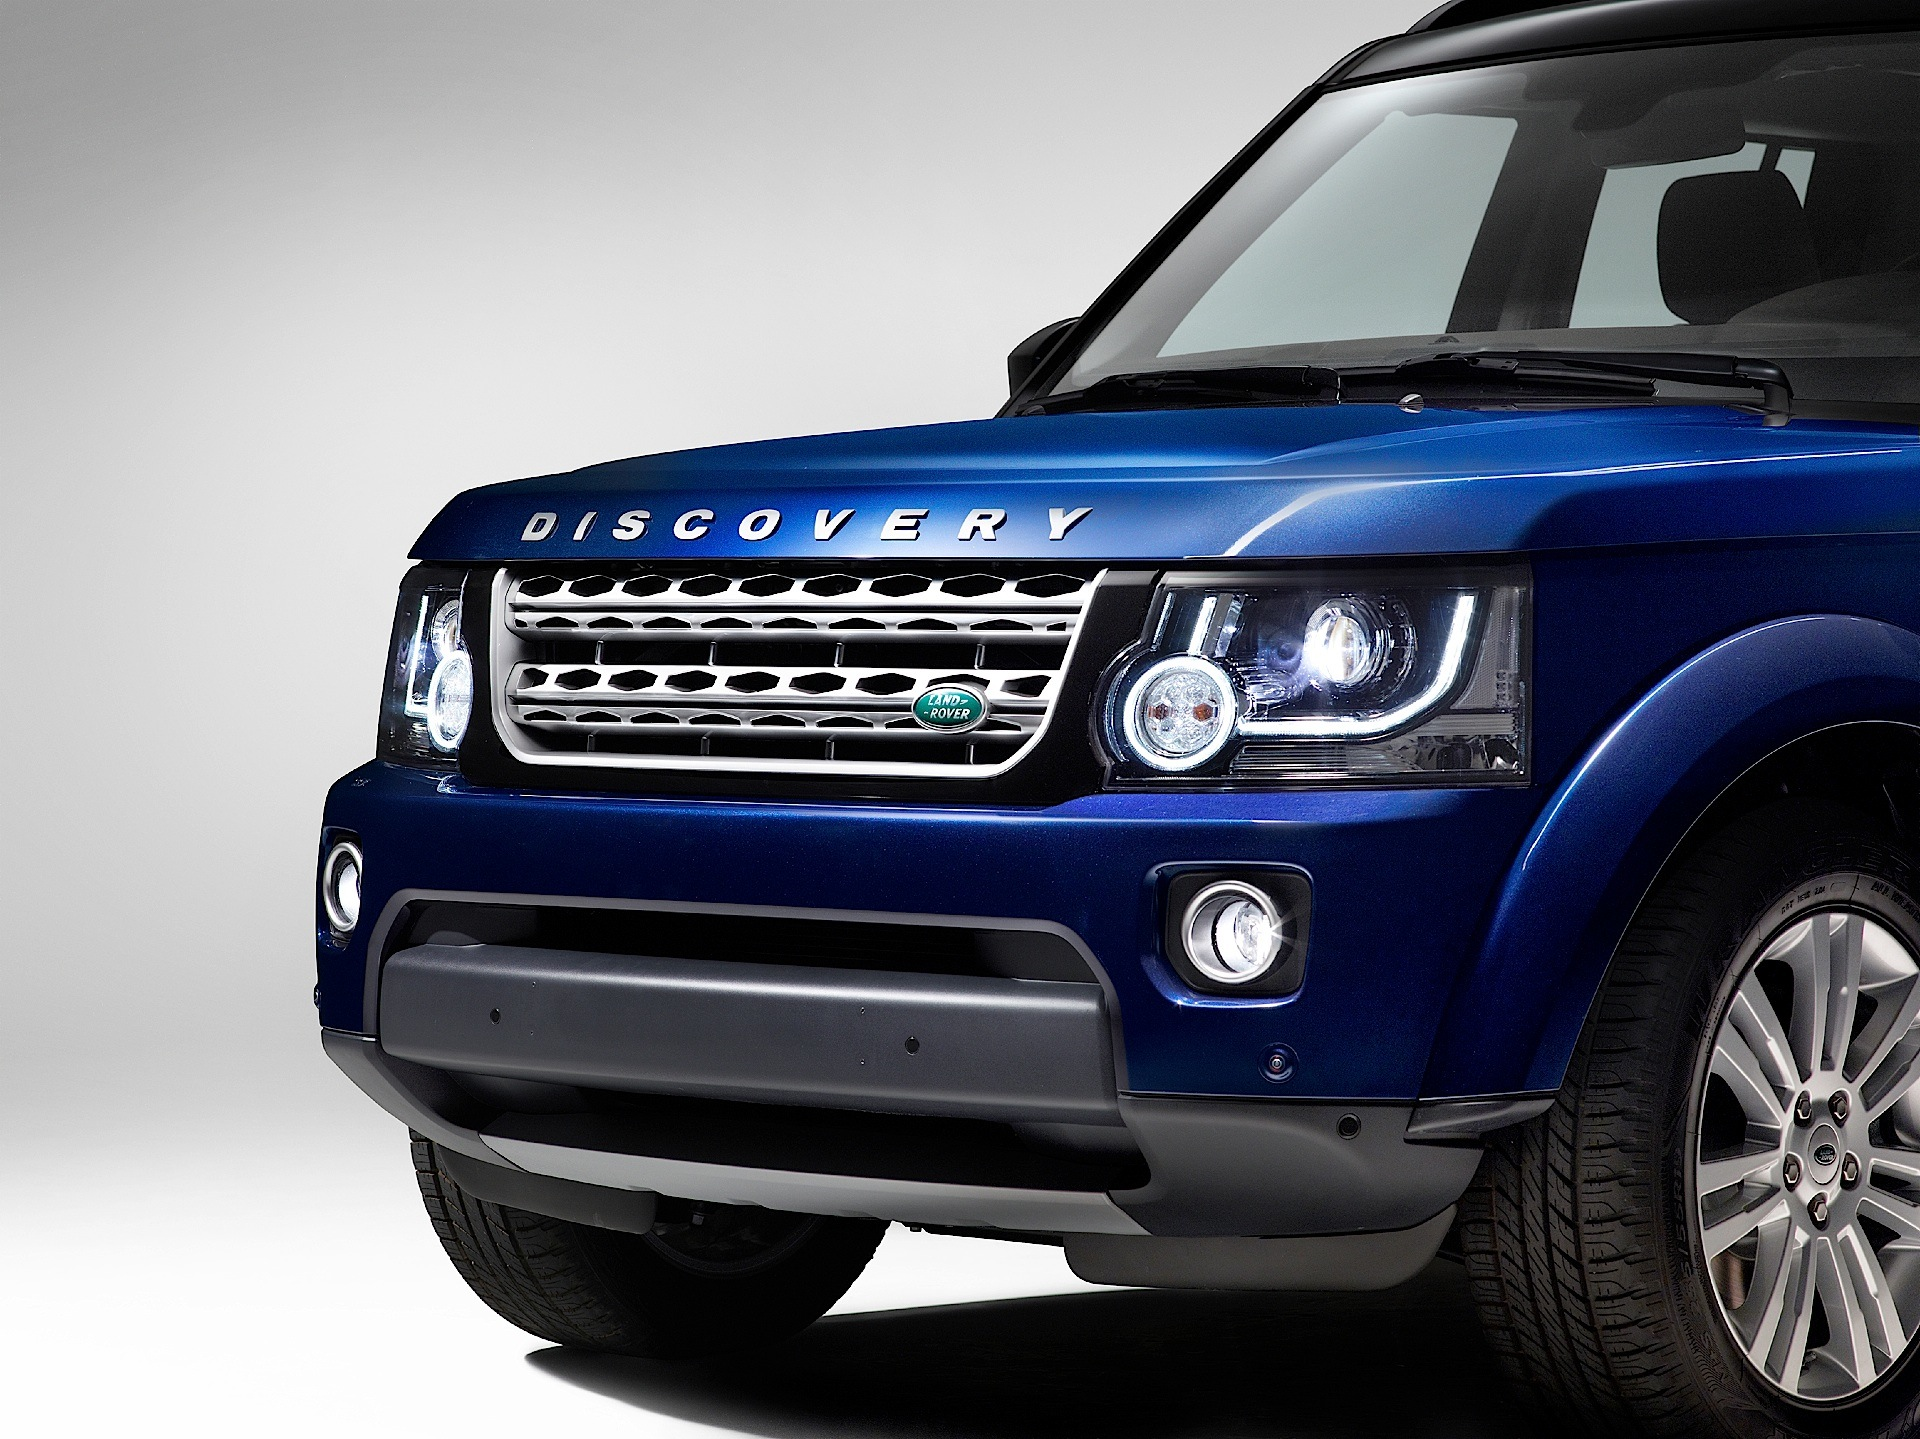 LAND ROVER Discovery LR4 specs 2013 2014 2015 2016 2017